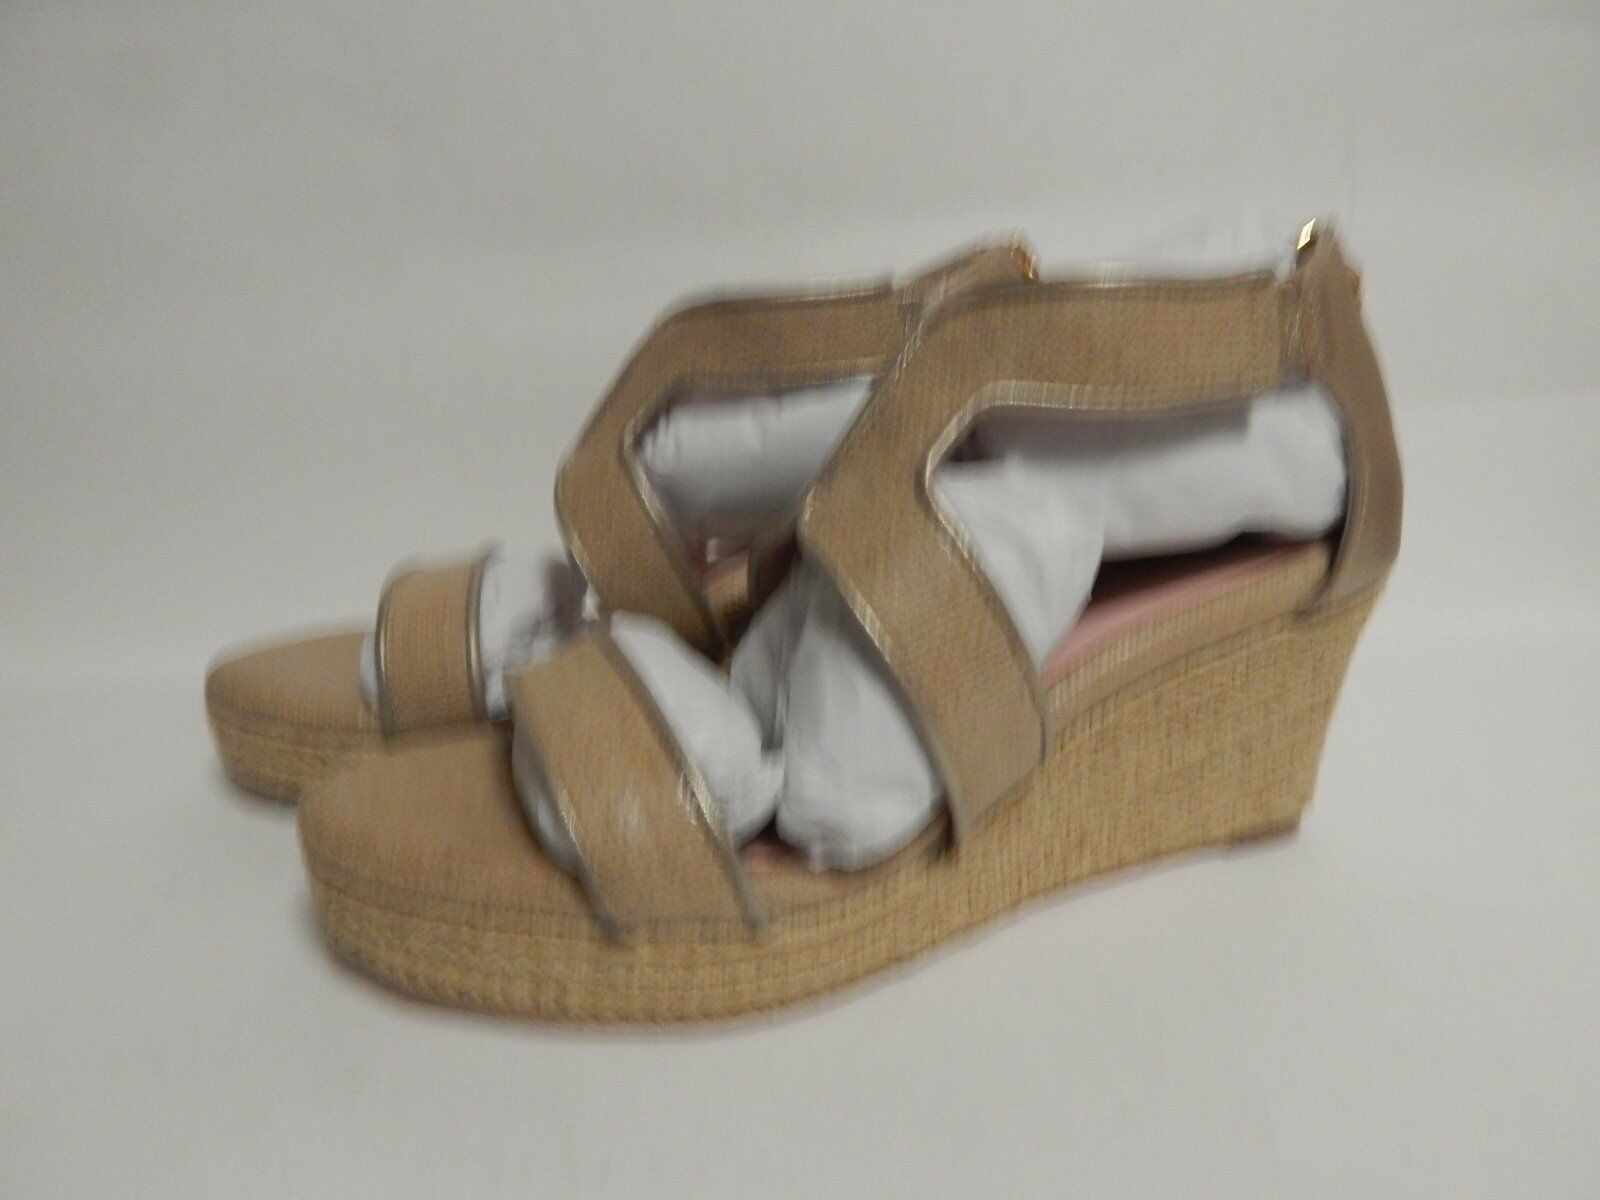 Taryn pink Karsen Wedge Sandal 5.5 M Nat gold CL  New with Box